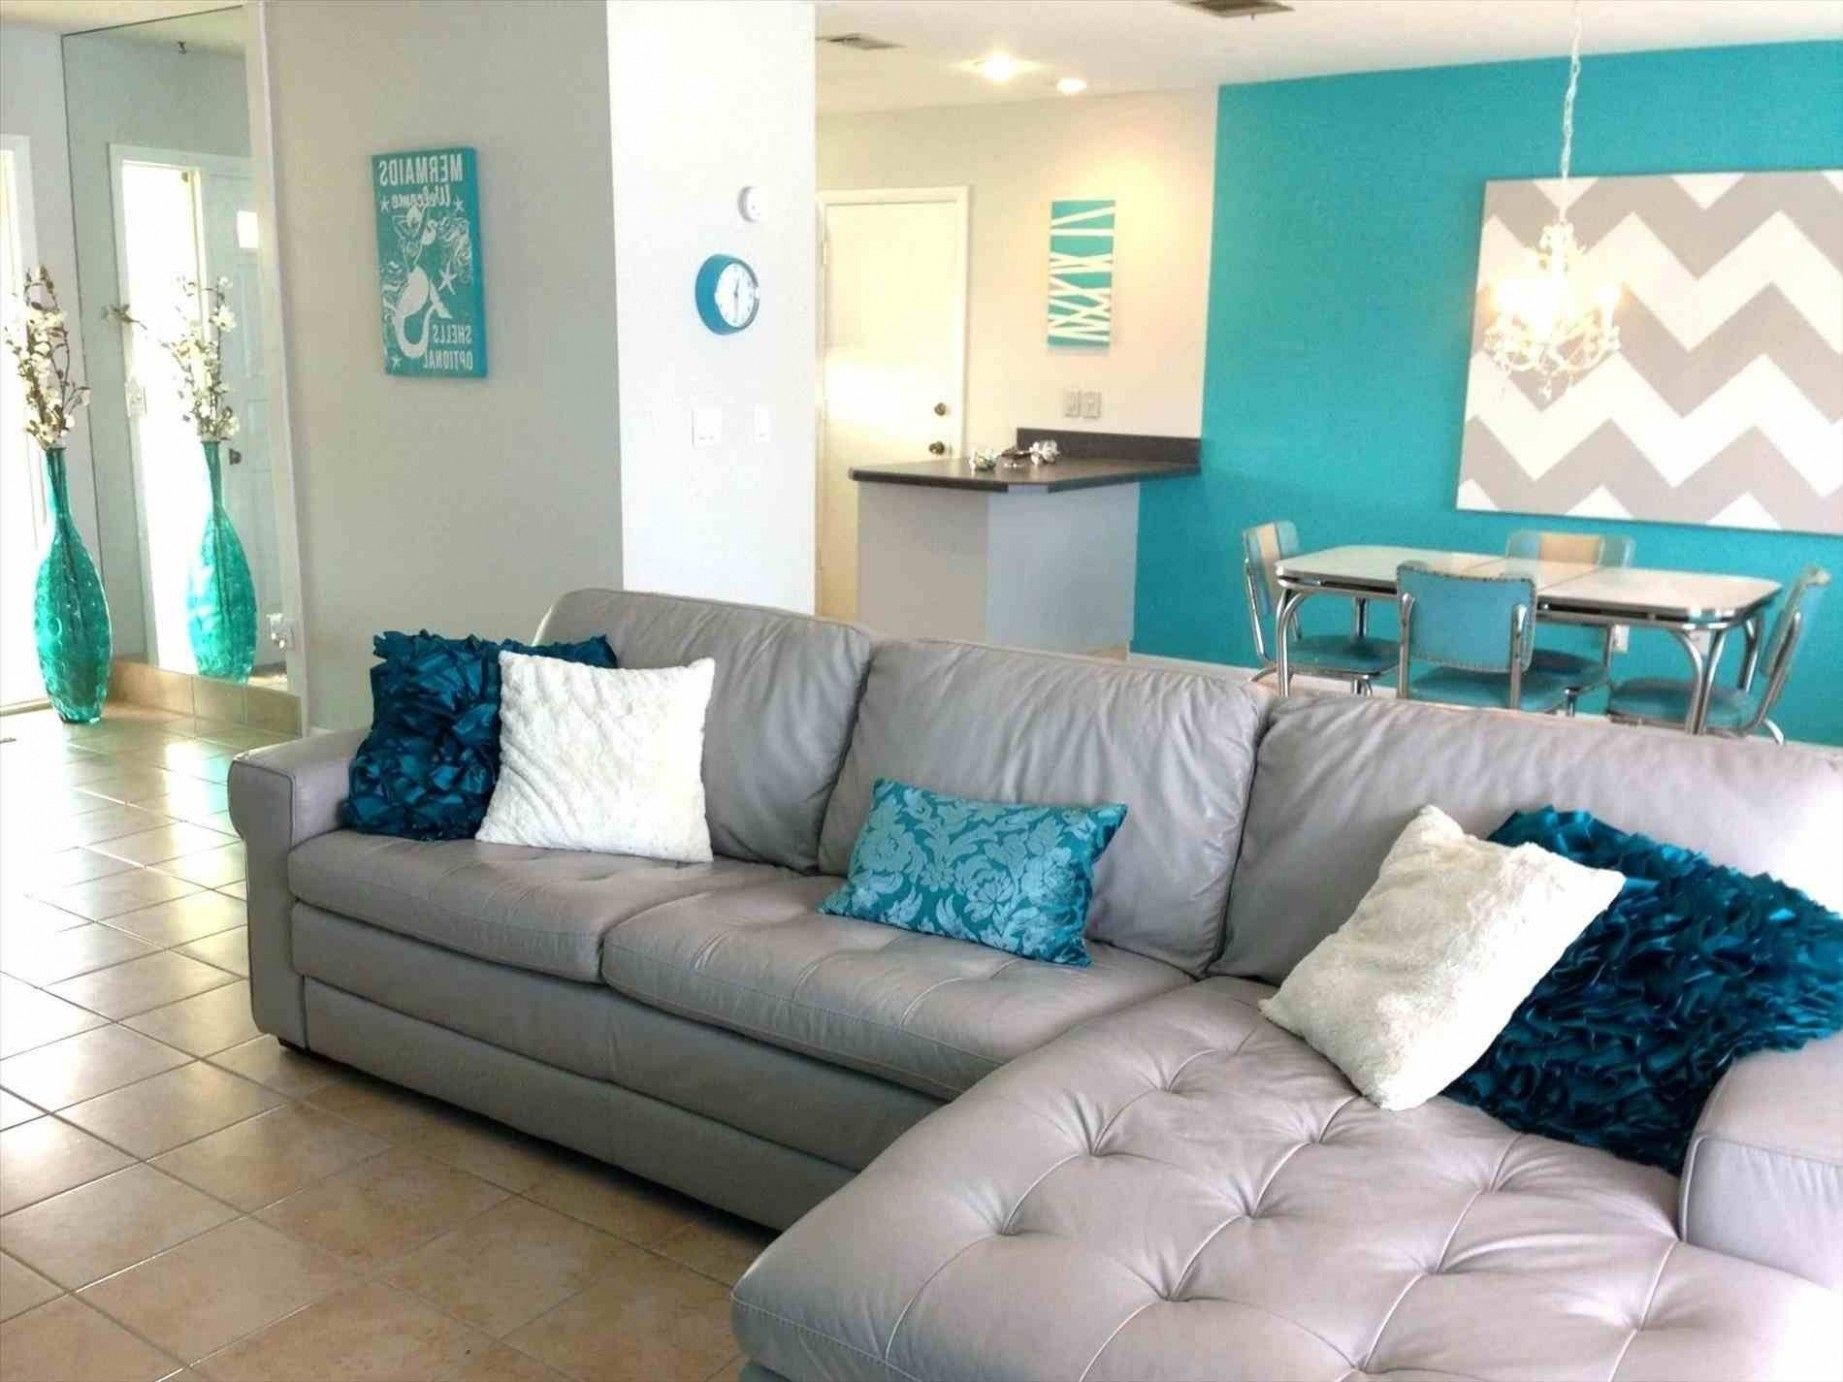 Gray And Turquoise Bedroom Ideas Home Decor Living Room Living Room Grey Turquois In 2020 Turquoise Living Room Decor Living Room Turquoise Teal Living Rooms